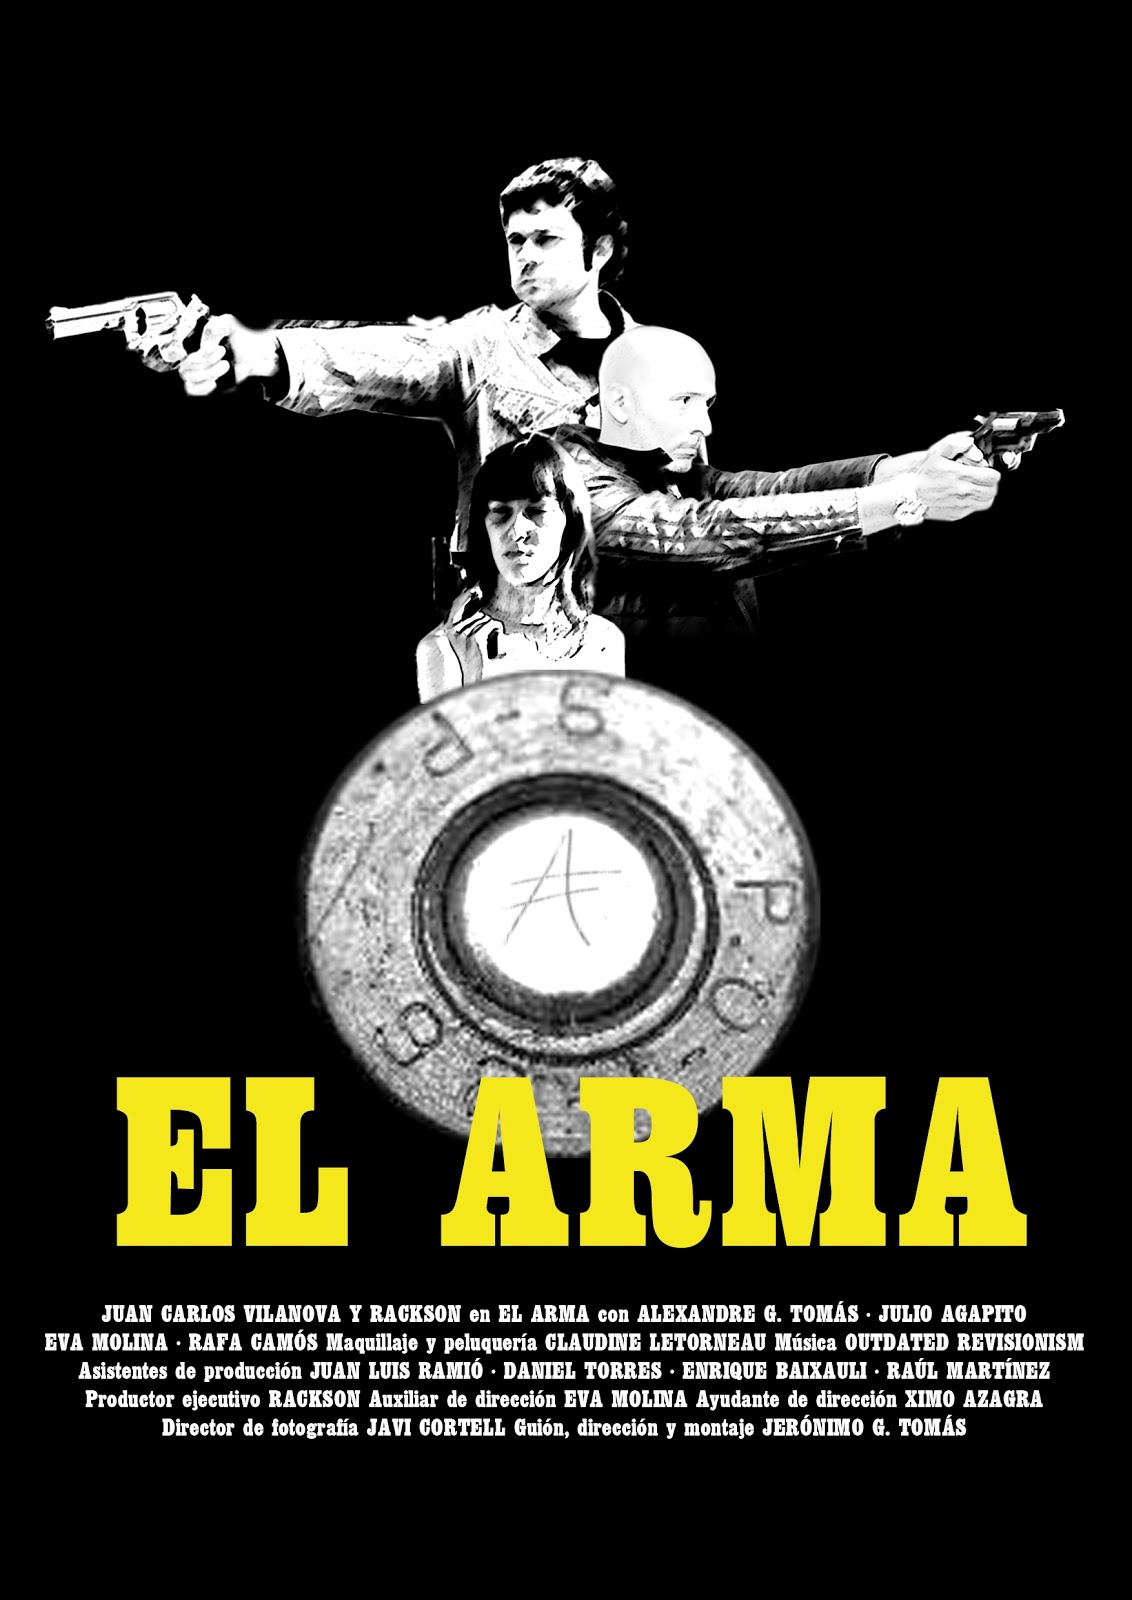 El arma / The Weapon (ver cortometraje)